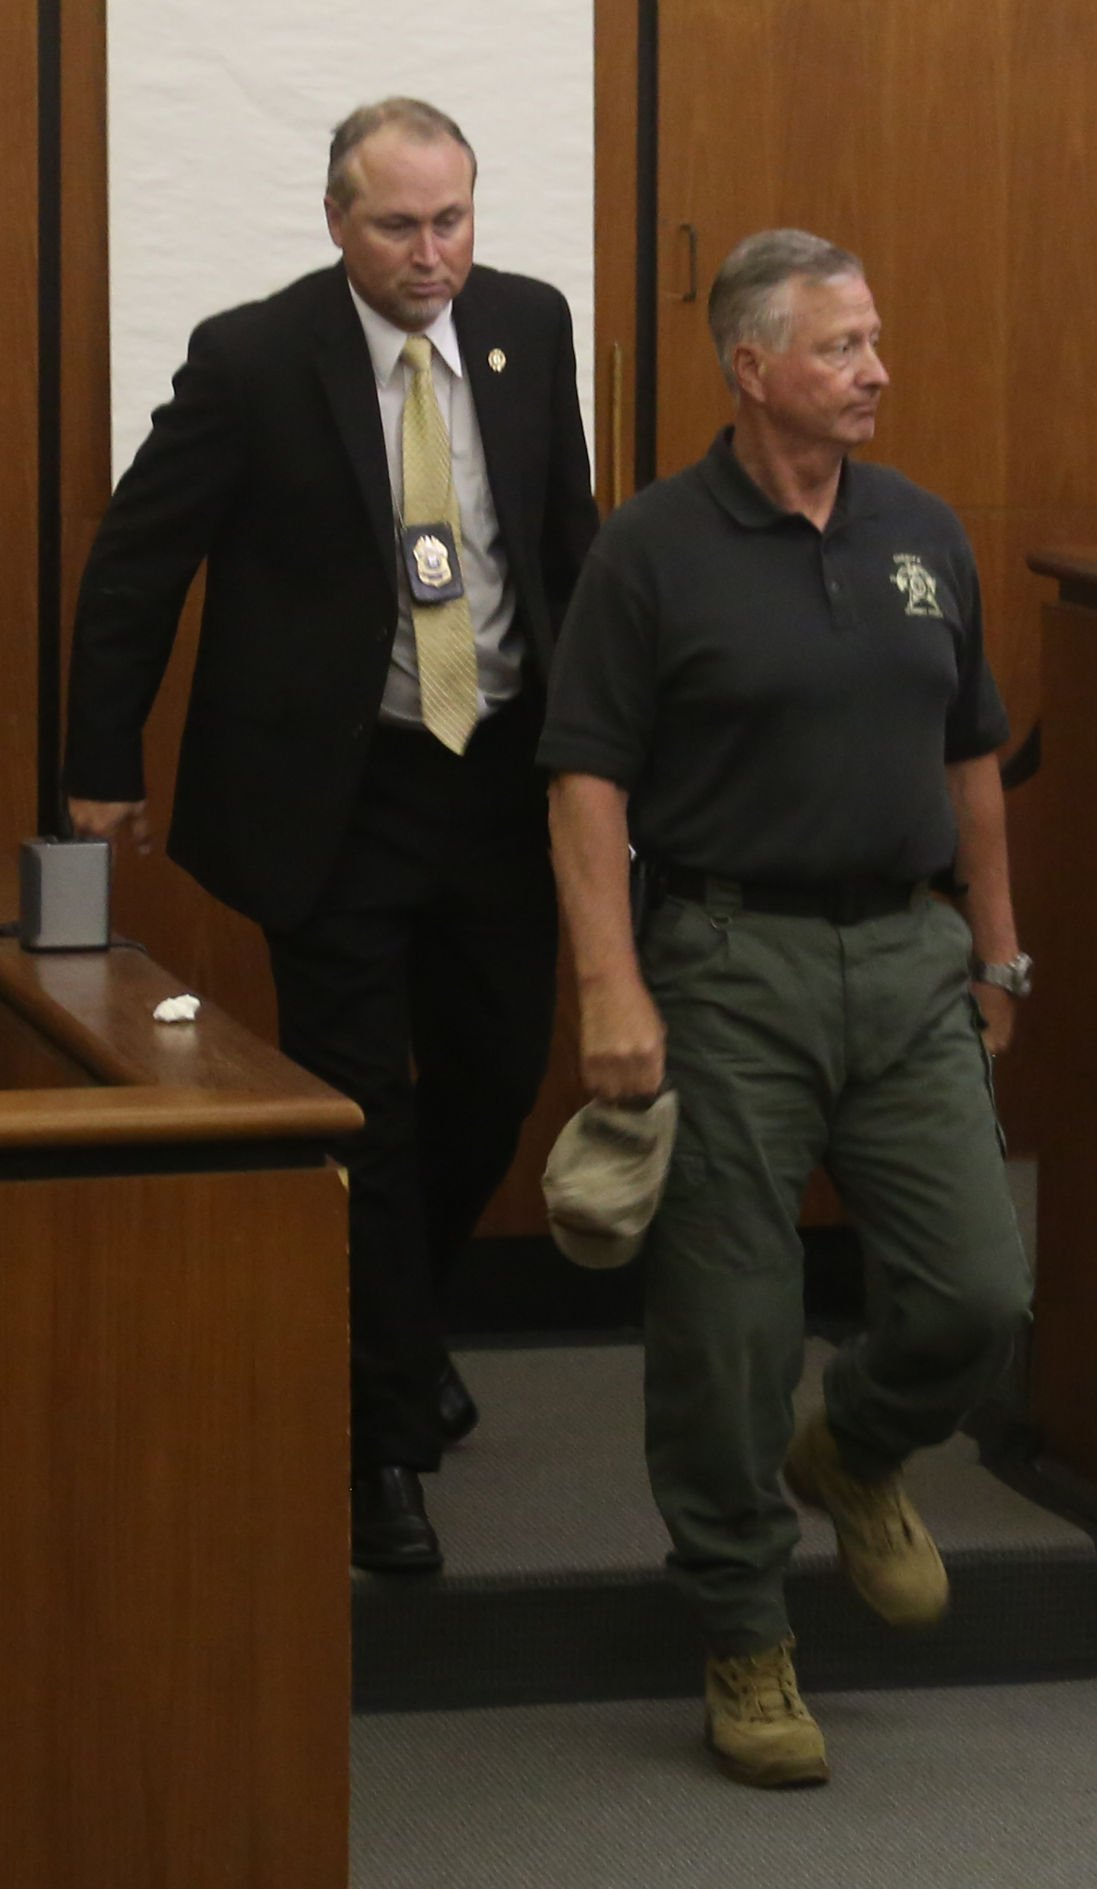 Florence County Sheriff Kenney Boone indicted by state grand jury